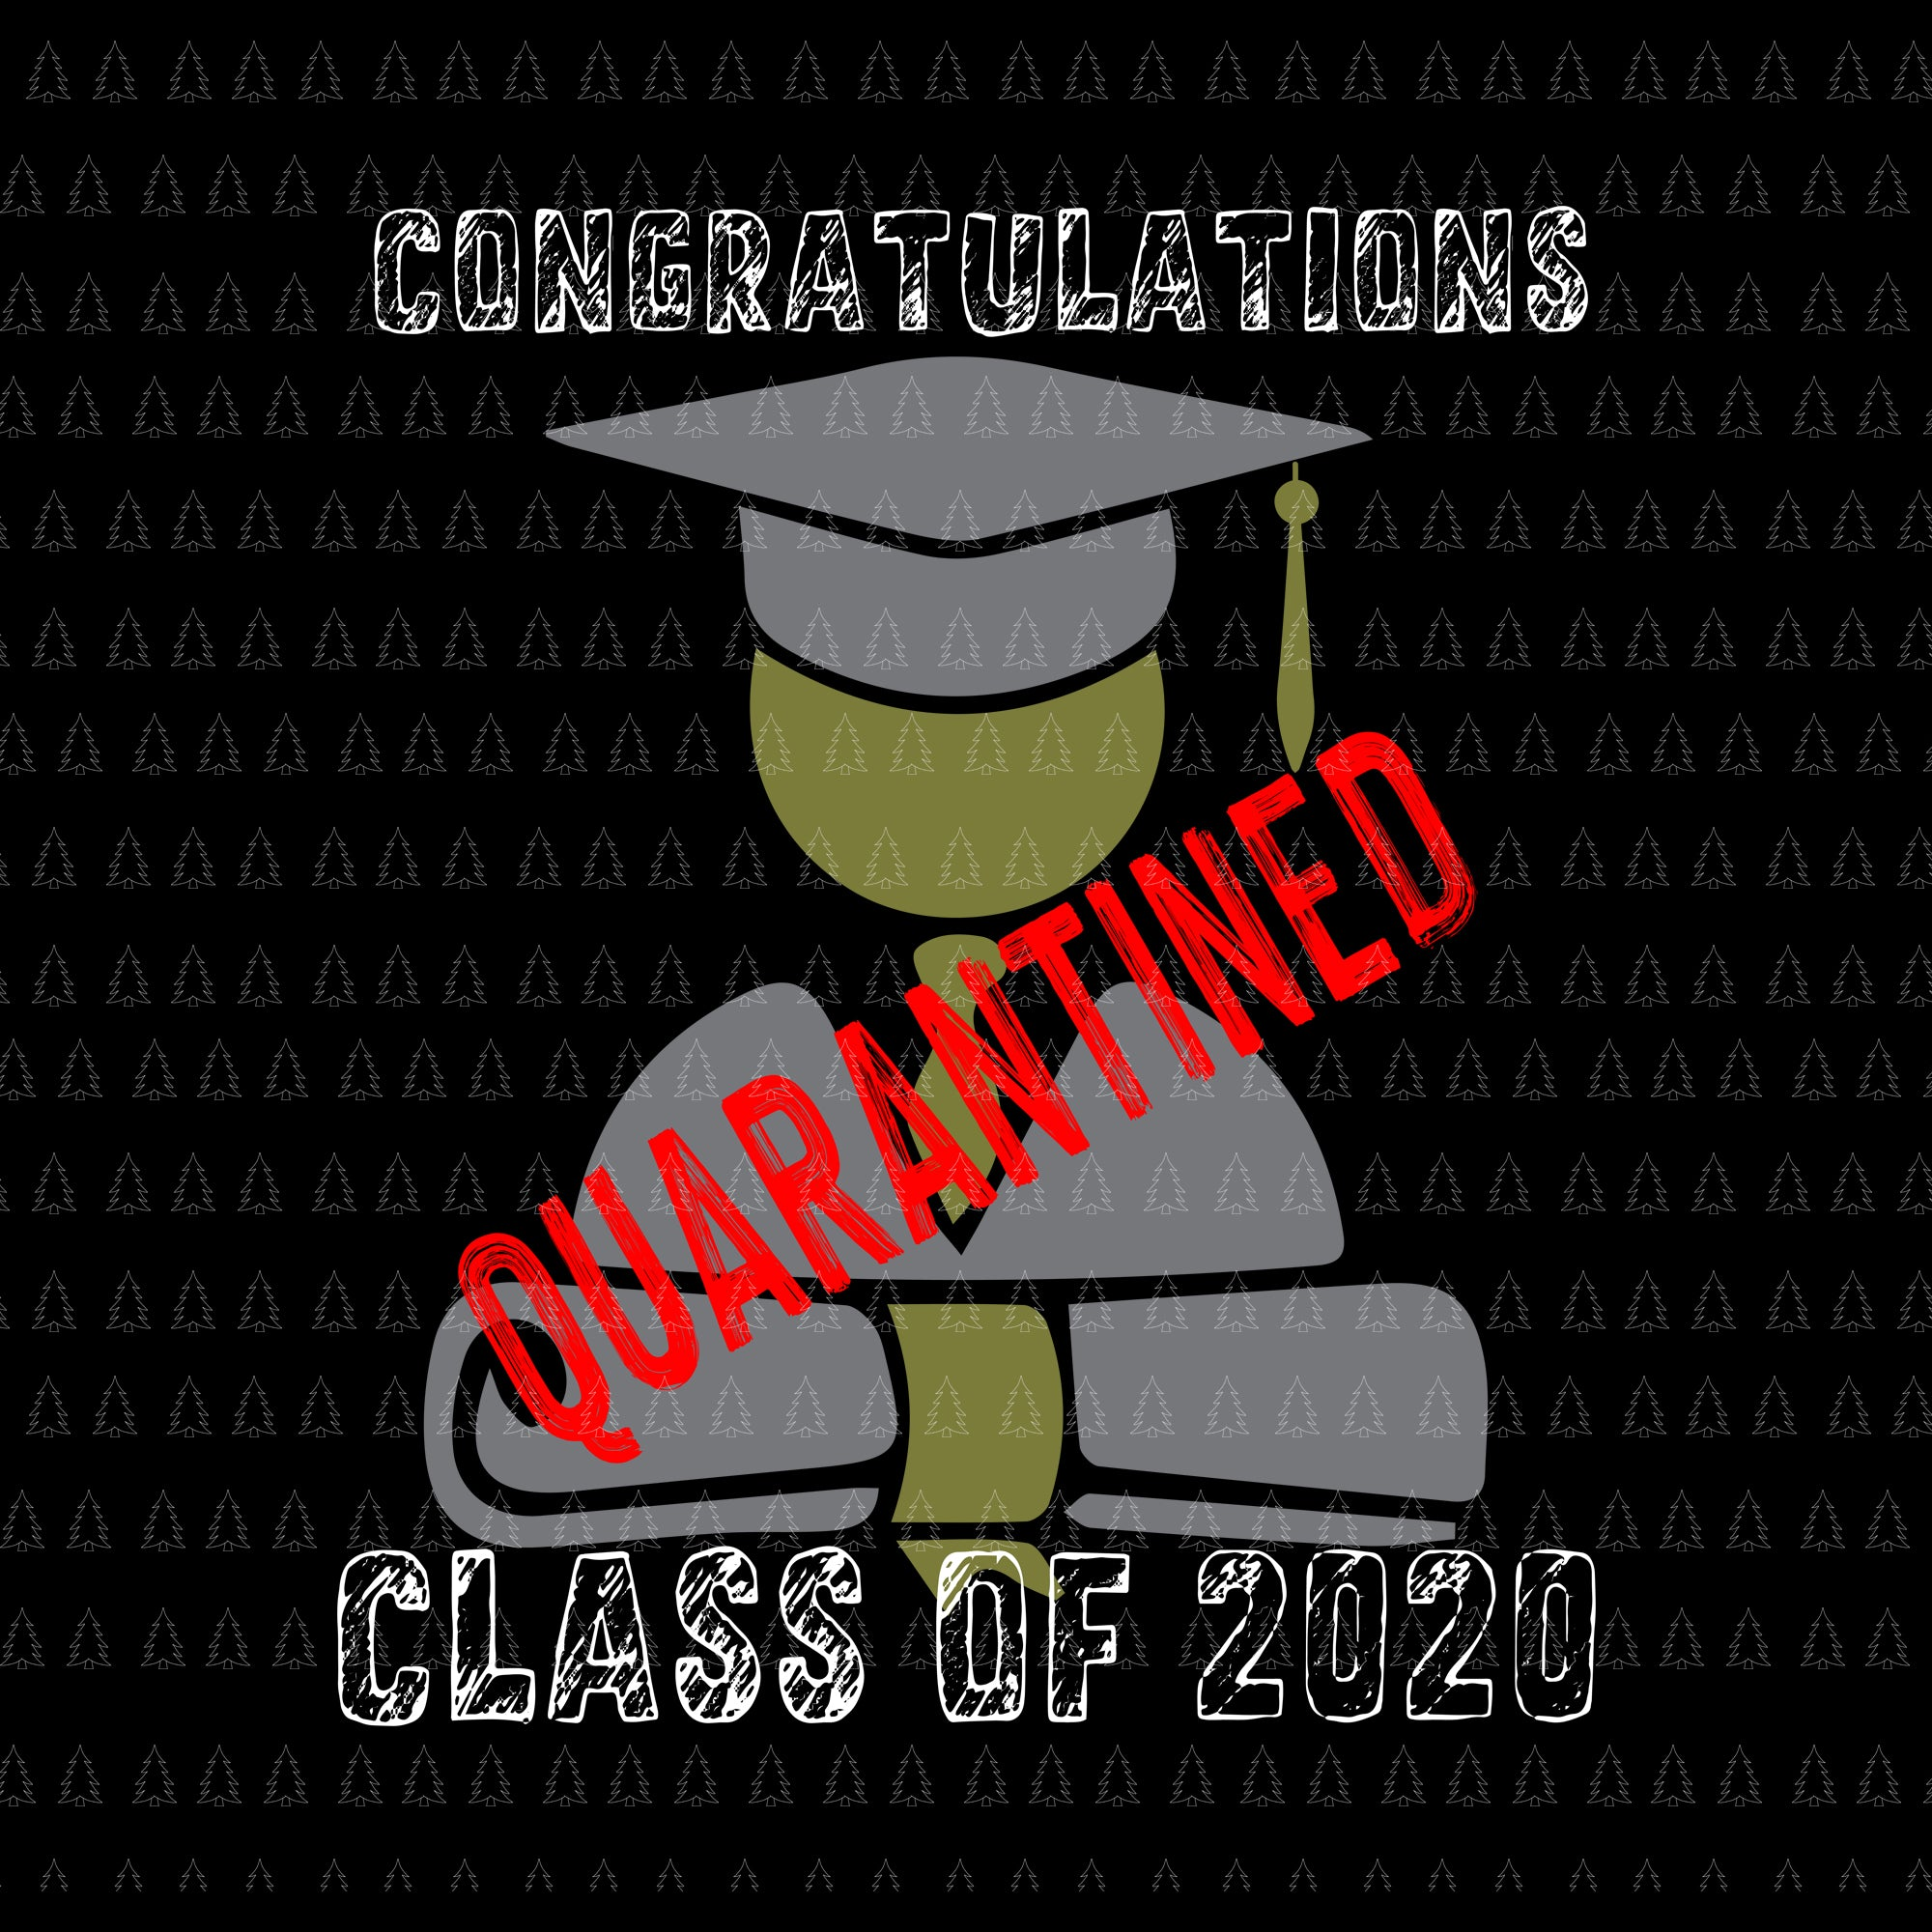 Congratulations quarantined class of 2020 svg, congratulations quarantined class of 2020, graduating class in quarantine